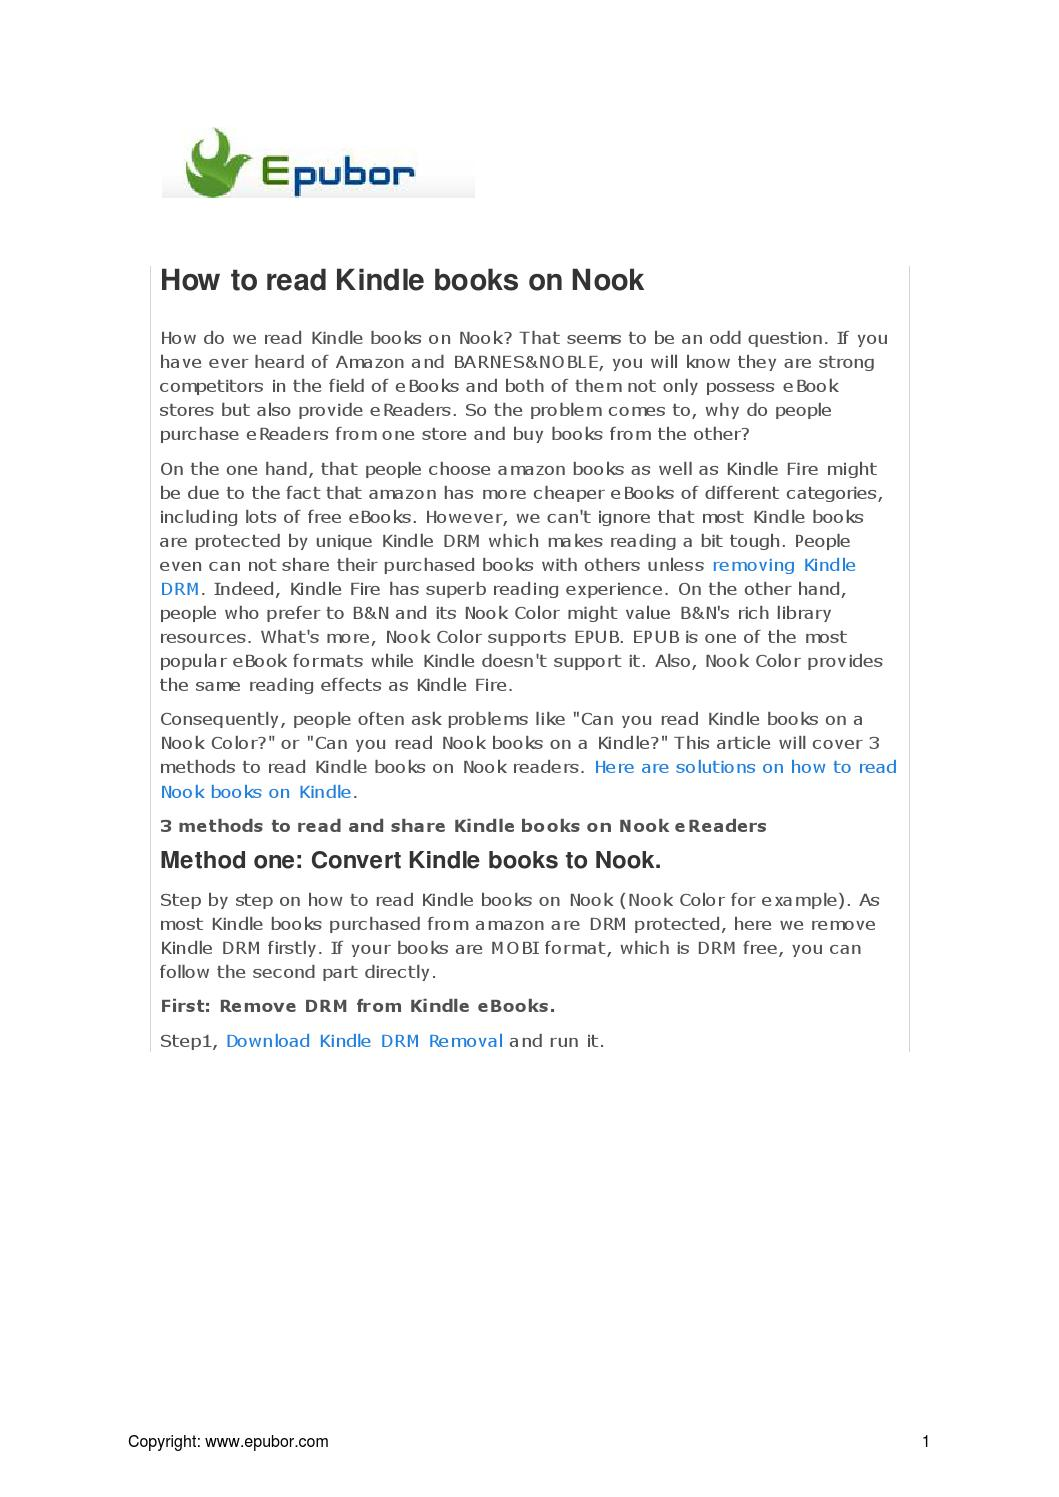 How To Remove Drm From Kindle Books